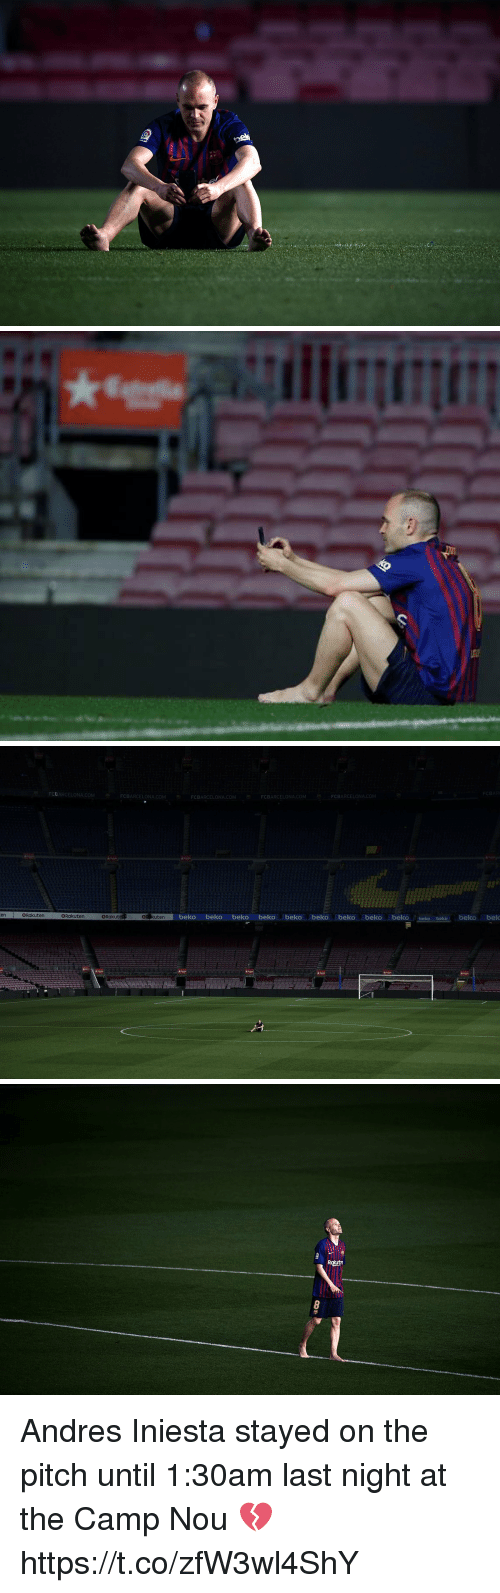 iniesta: FCBARCELONA.COM  FCBARCELONA.COM  FCBARCELONA.COM  FCBARCELONA.COM  FCBARCELONA.COM  enRakuten  eR kuten  beko beko beko beko beko beko beko beko beko beko beko beko bek  BRakuten  @Rakut   Rautn Andres Iniesta stayed on the pitch until 1:30am last night at the Camp Nou 💔 https://t.co/zfW3wl4ShY